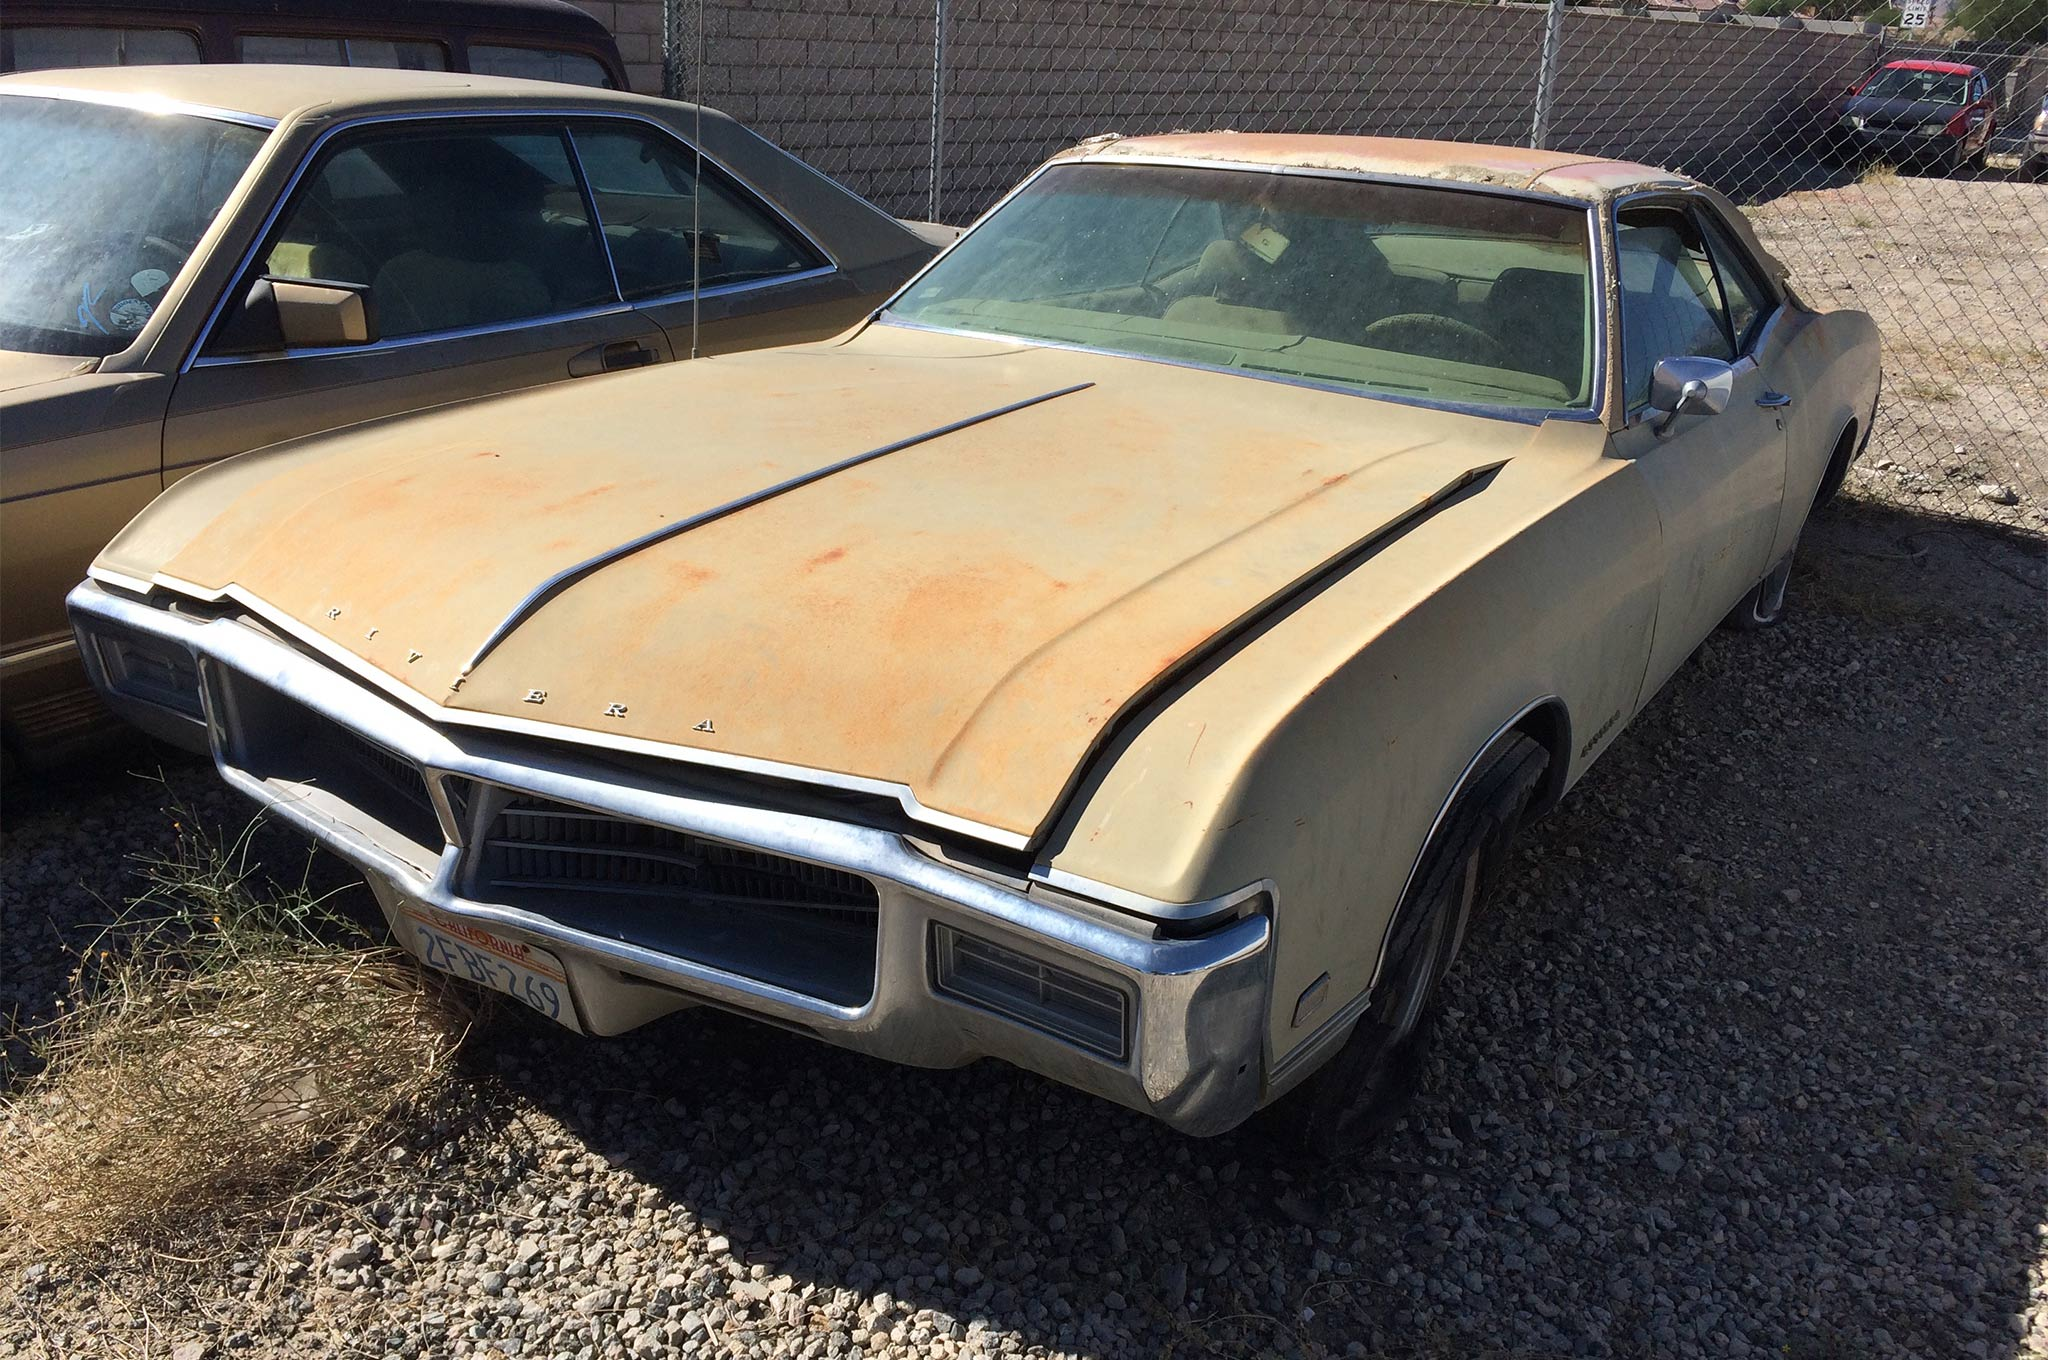 A skilled autobody guy could straighten out the hood and front bumper of this 1968 Riviera and make it into a really cool cruiser. Aside from the cosmetic front-end damage, this car is rock solid. Honestly, we wouldn't even bother to paint it. Drop in a torquey 455 and do block-long burnouts.